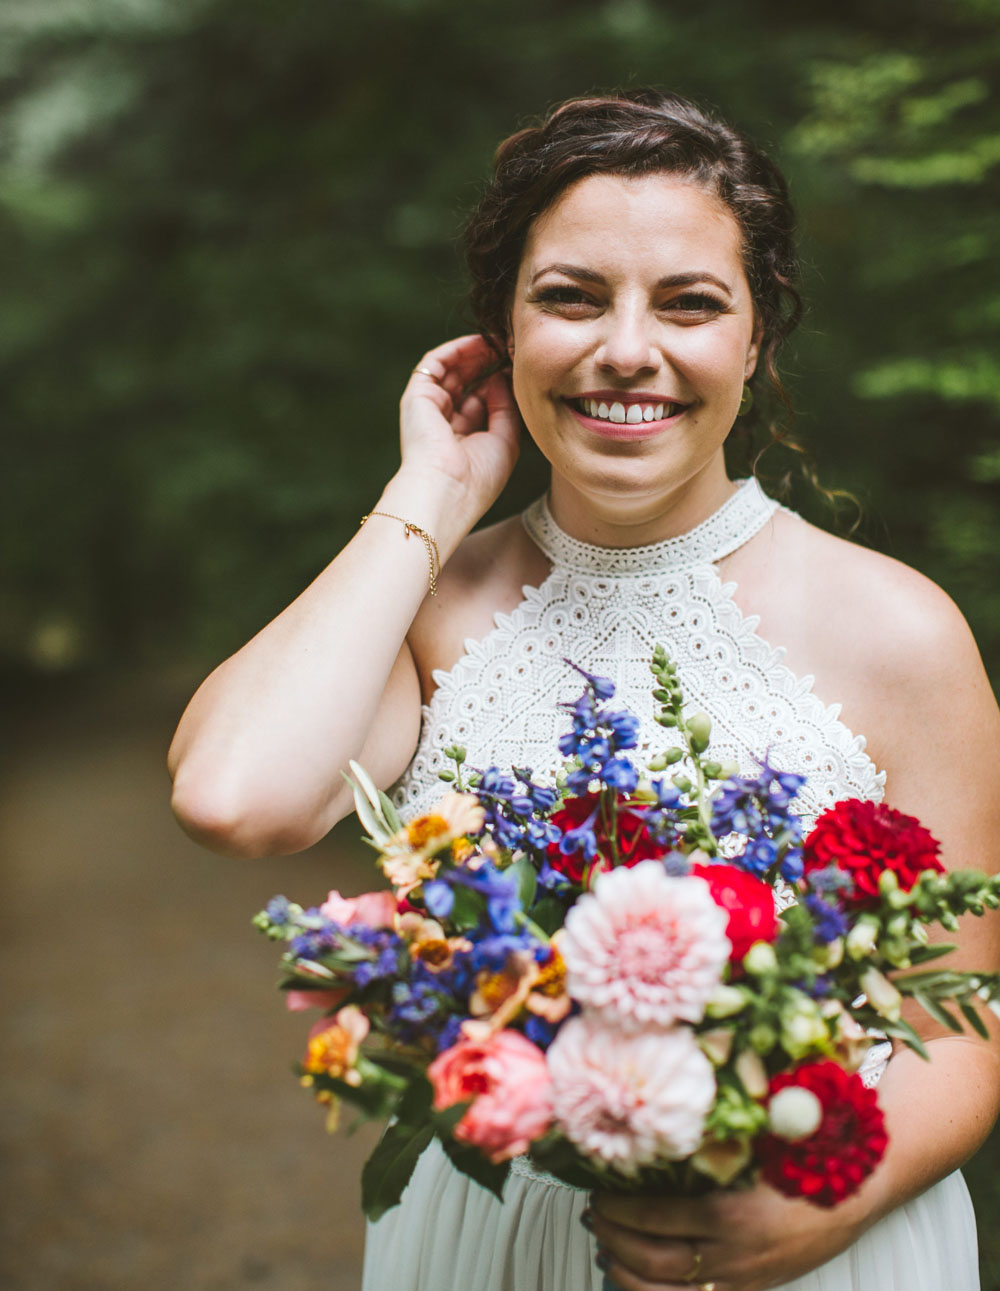 Garden wedding bouquet design